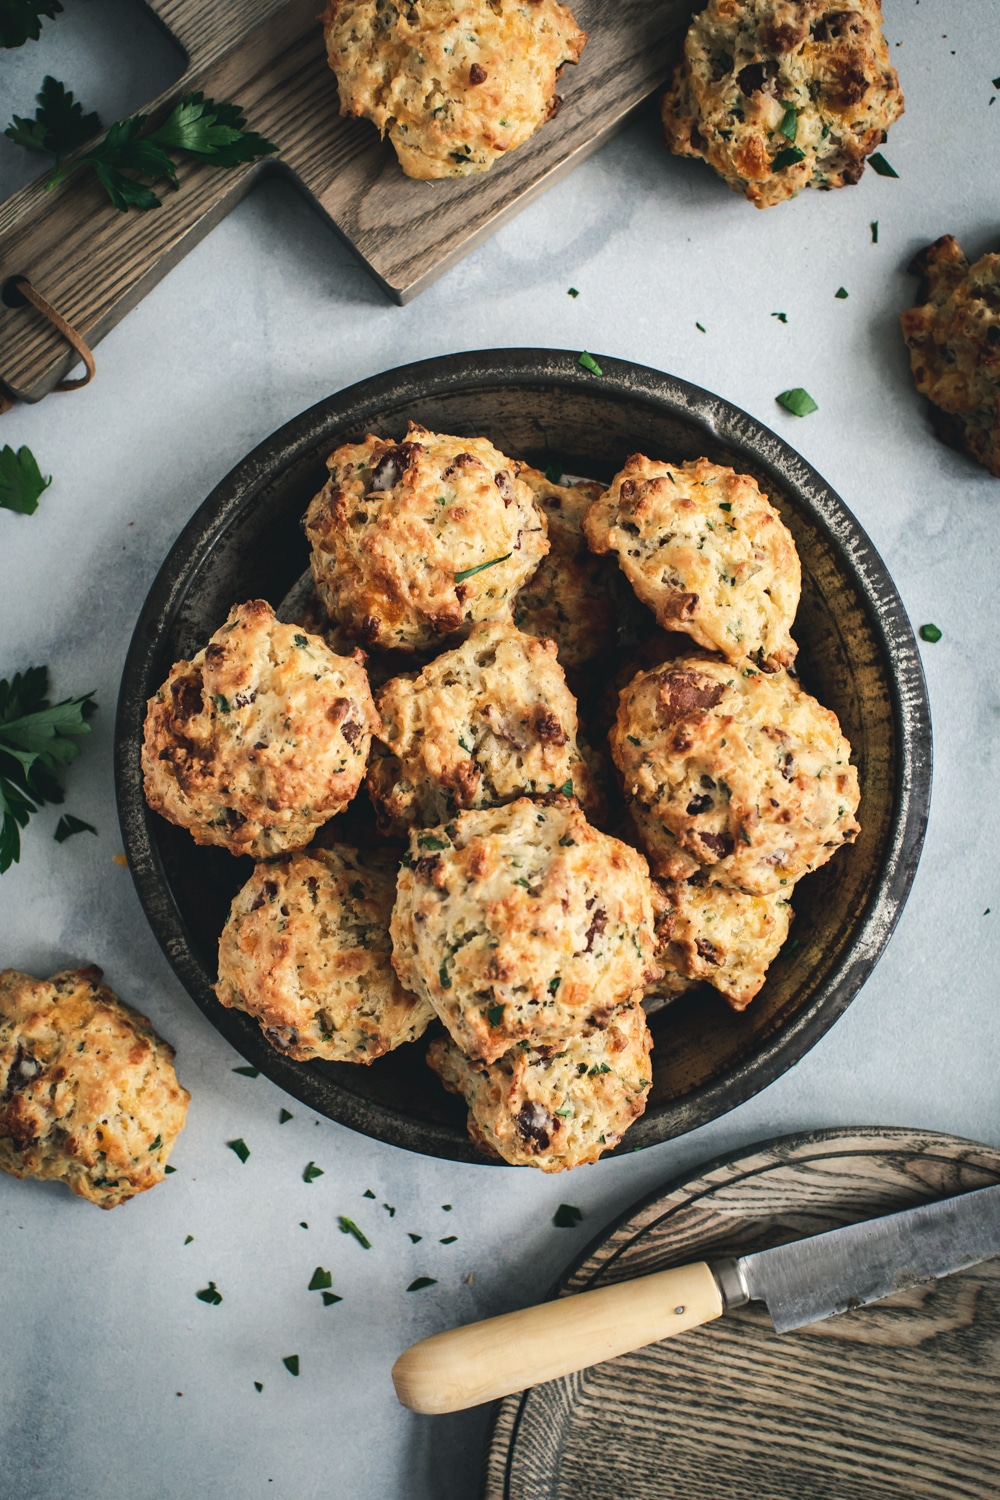 Cheddar biscuits in tin